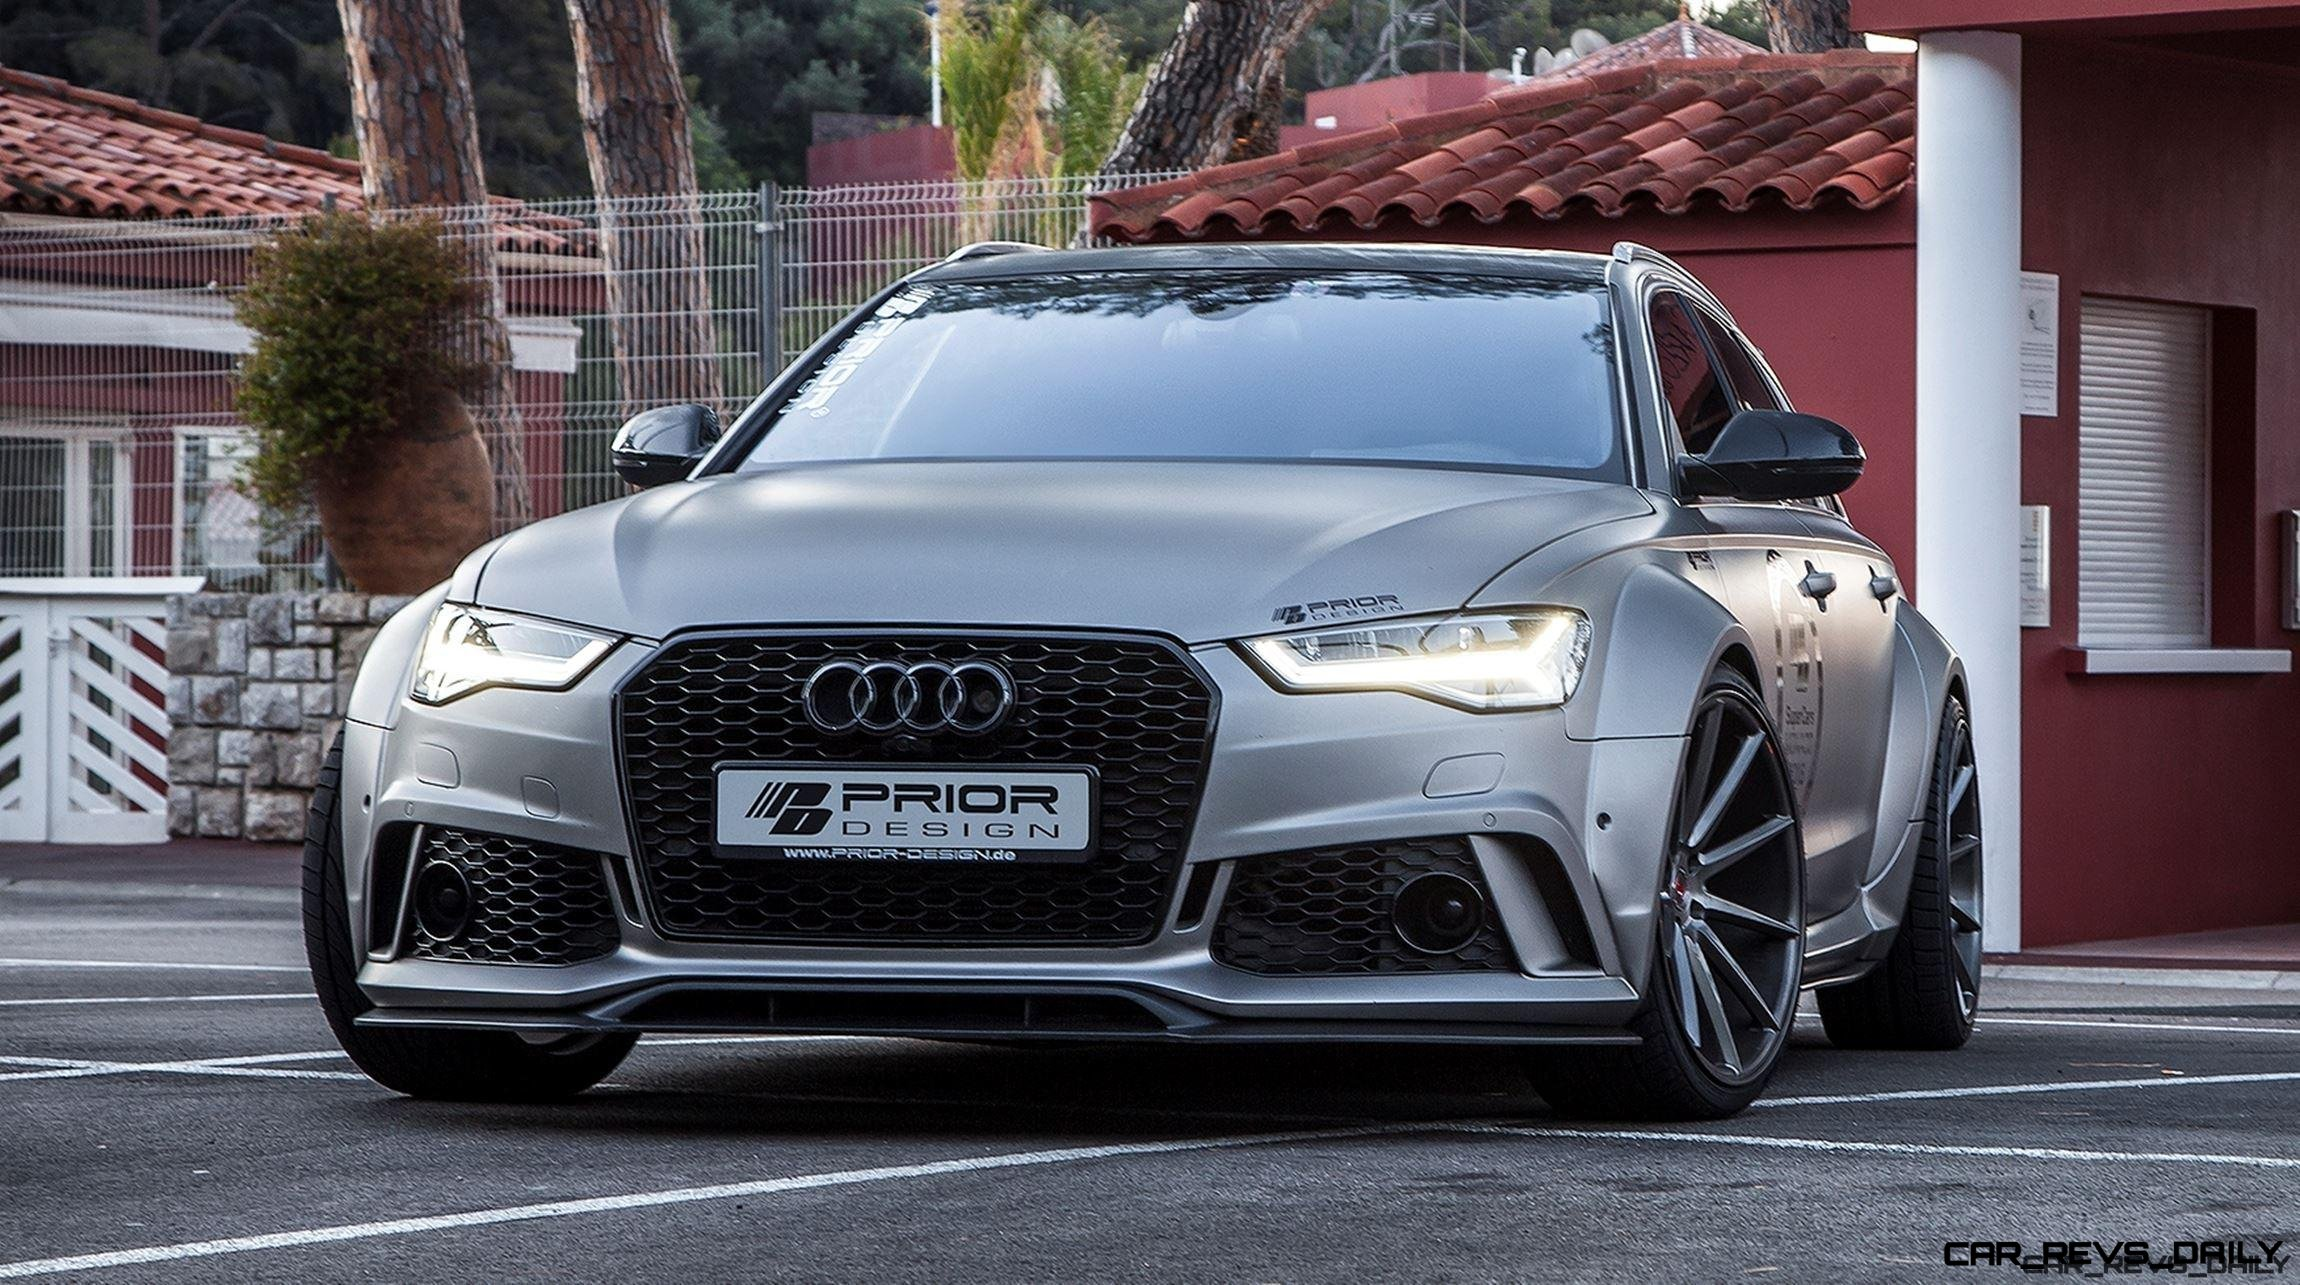 Audi A6 S6 RS6 Widebody PRIOR DESIGN PD600R Is Hot New Aerokit